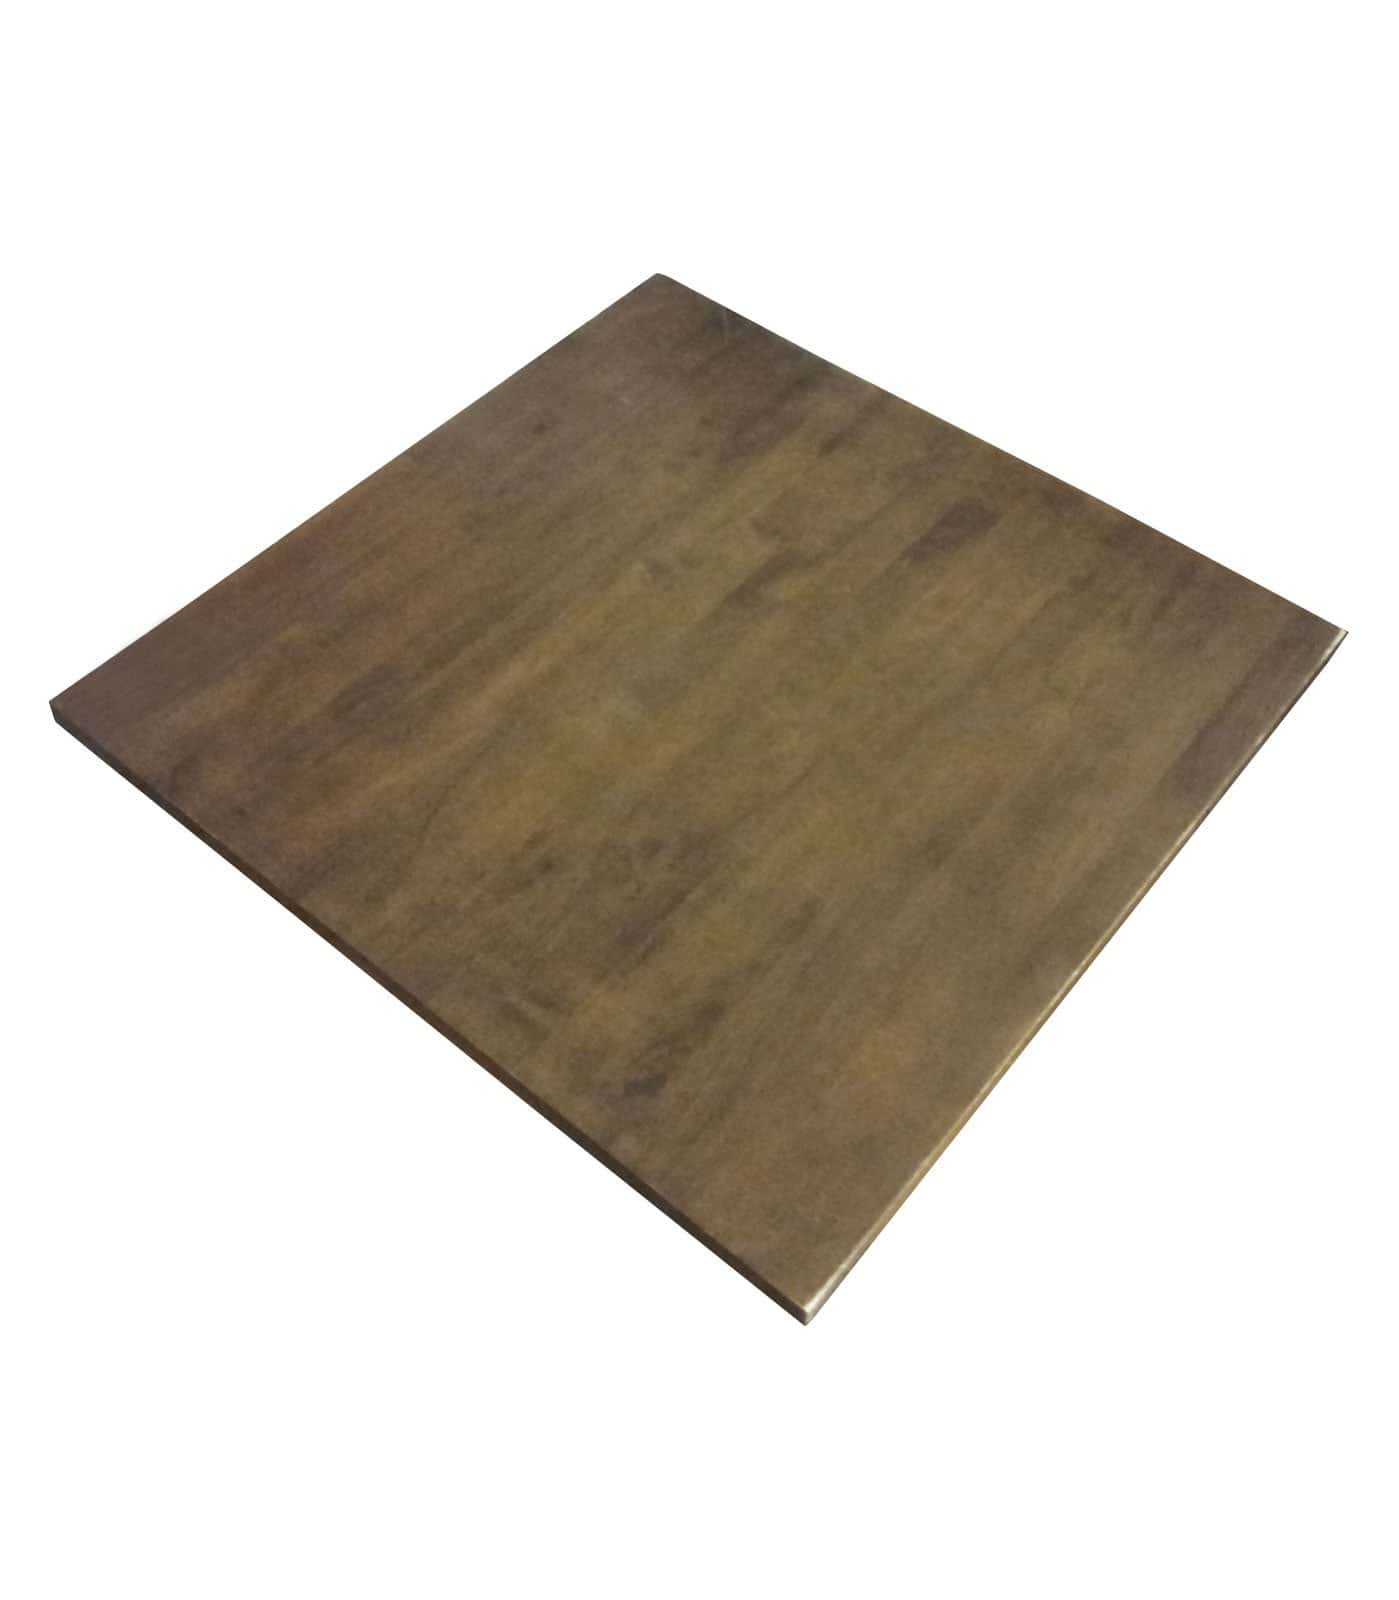 Square Restaurant Table Tops Plan